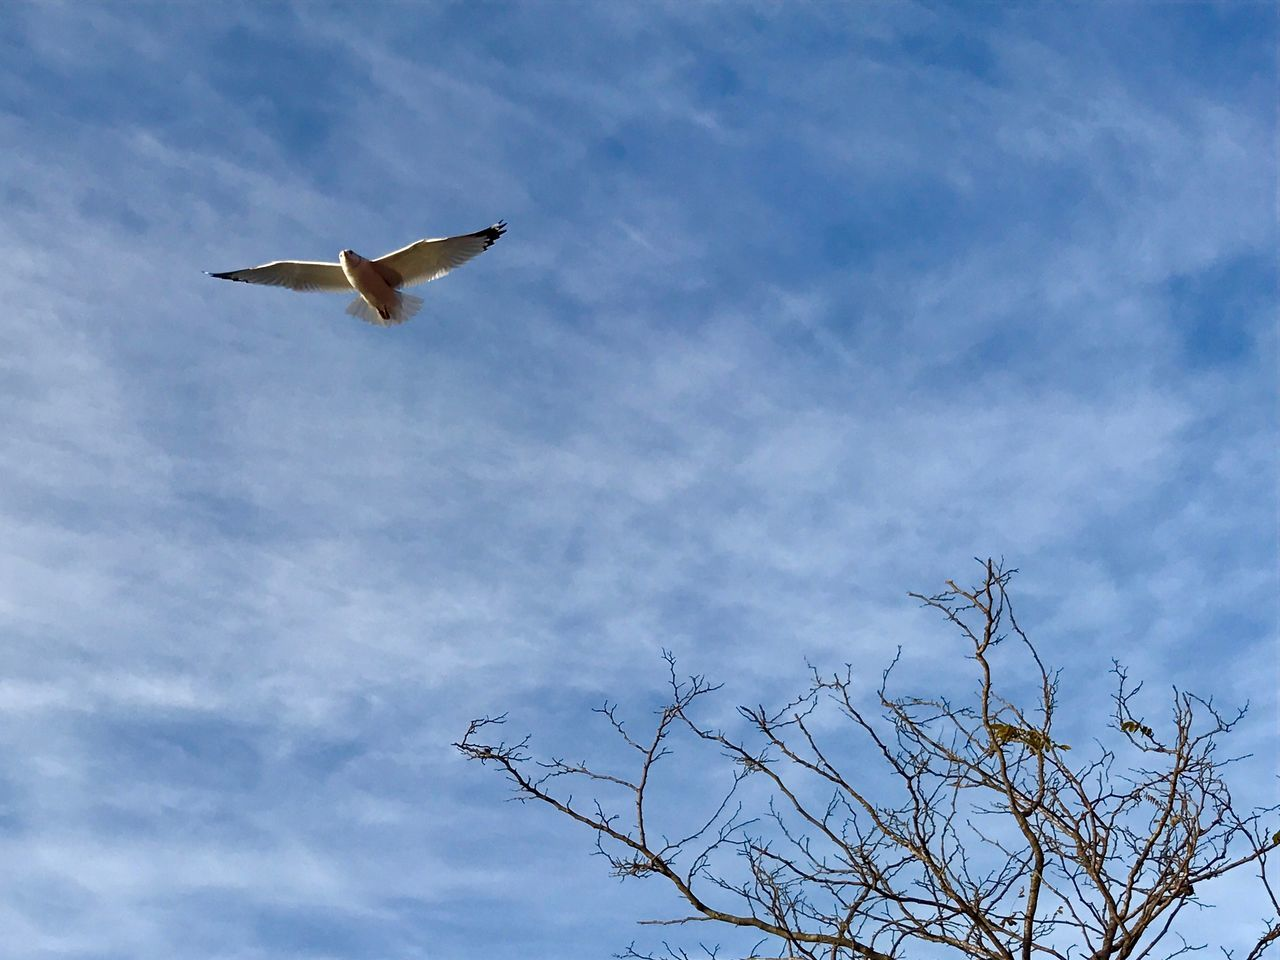 bird, animal themes, animals in the wild, flying, one animal, low angle view, spread wings, sky, animal wildlife, day, cloud - sky, nature, mid-air, outdoors, no people, tree, beauty in nature, bird of prey